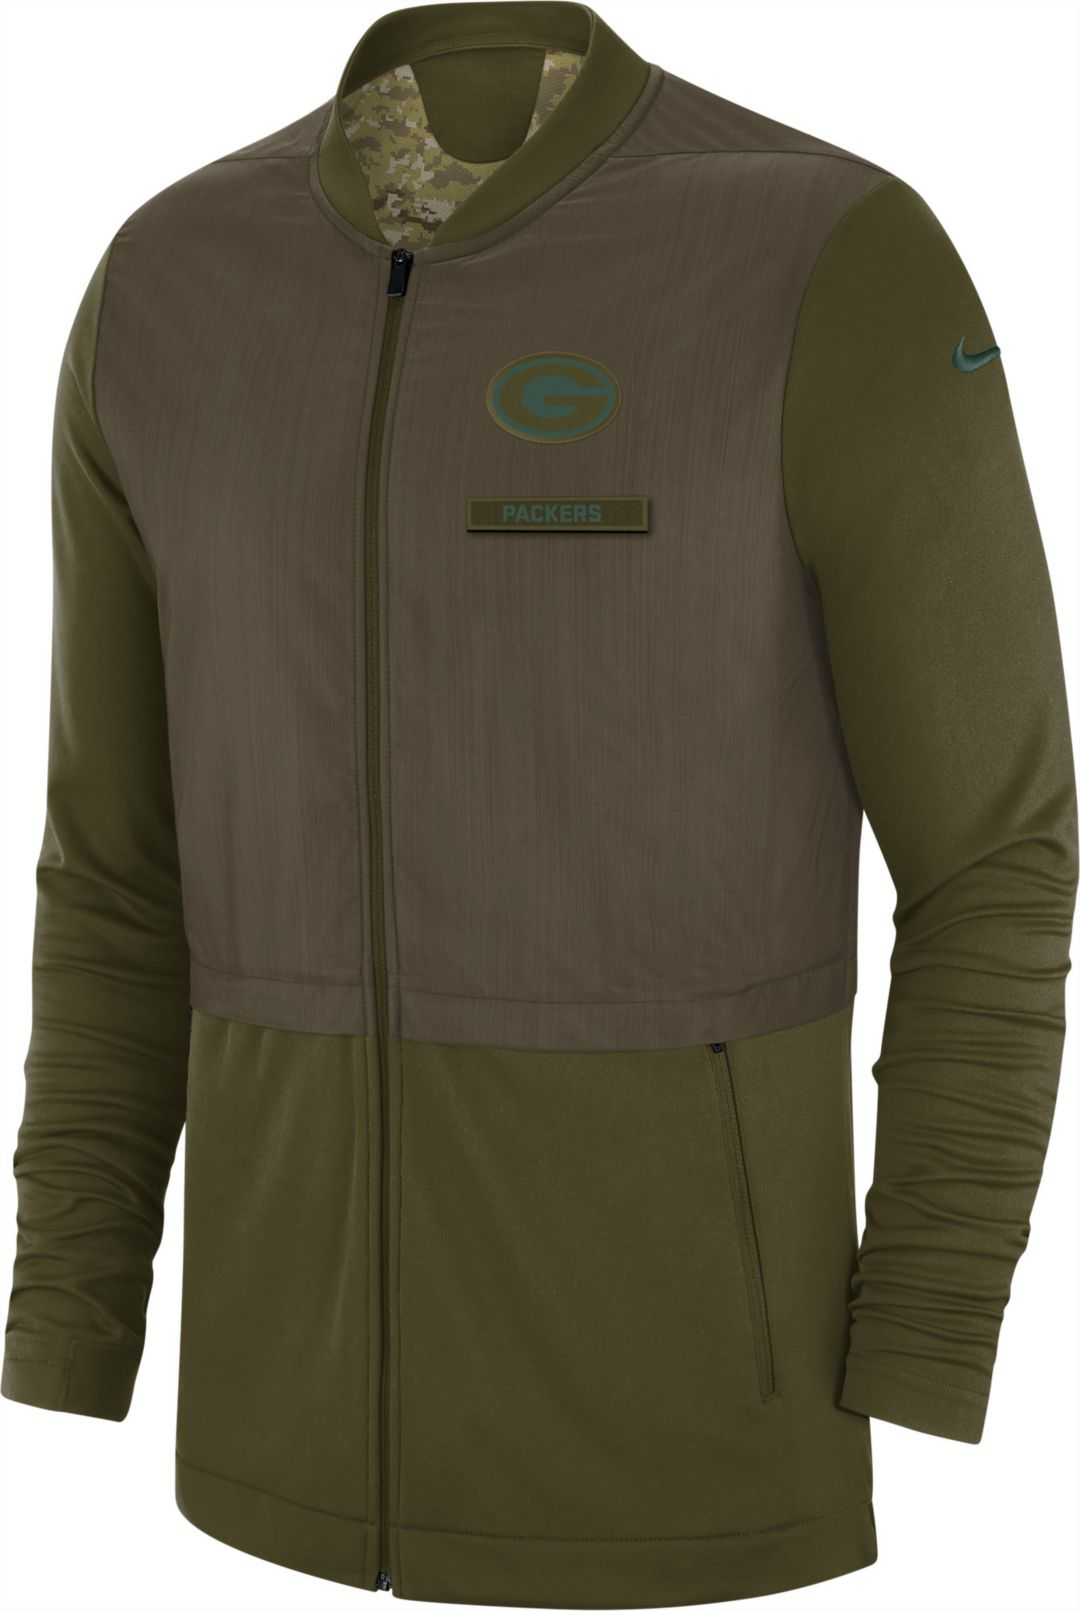 d4d39b623 Nike Men's Salute to Service Green Bay Packers Hybrid Full-Zip Jacket.  noImageFound. Previous. 1